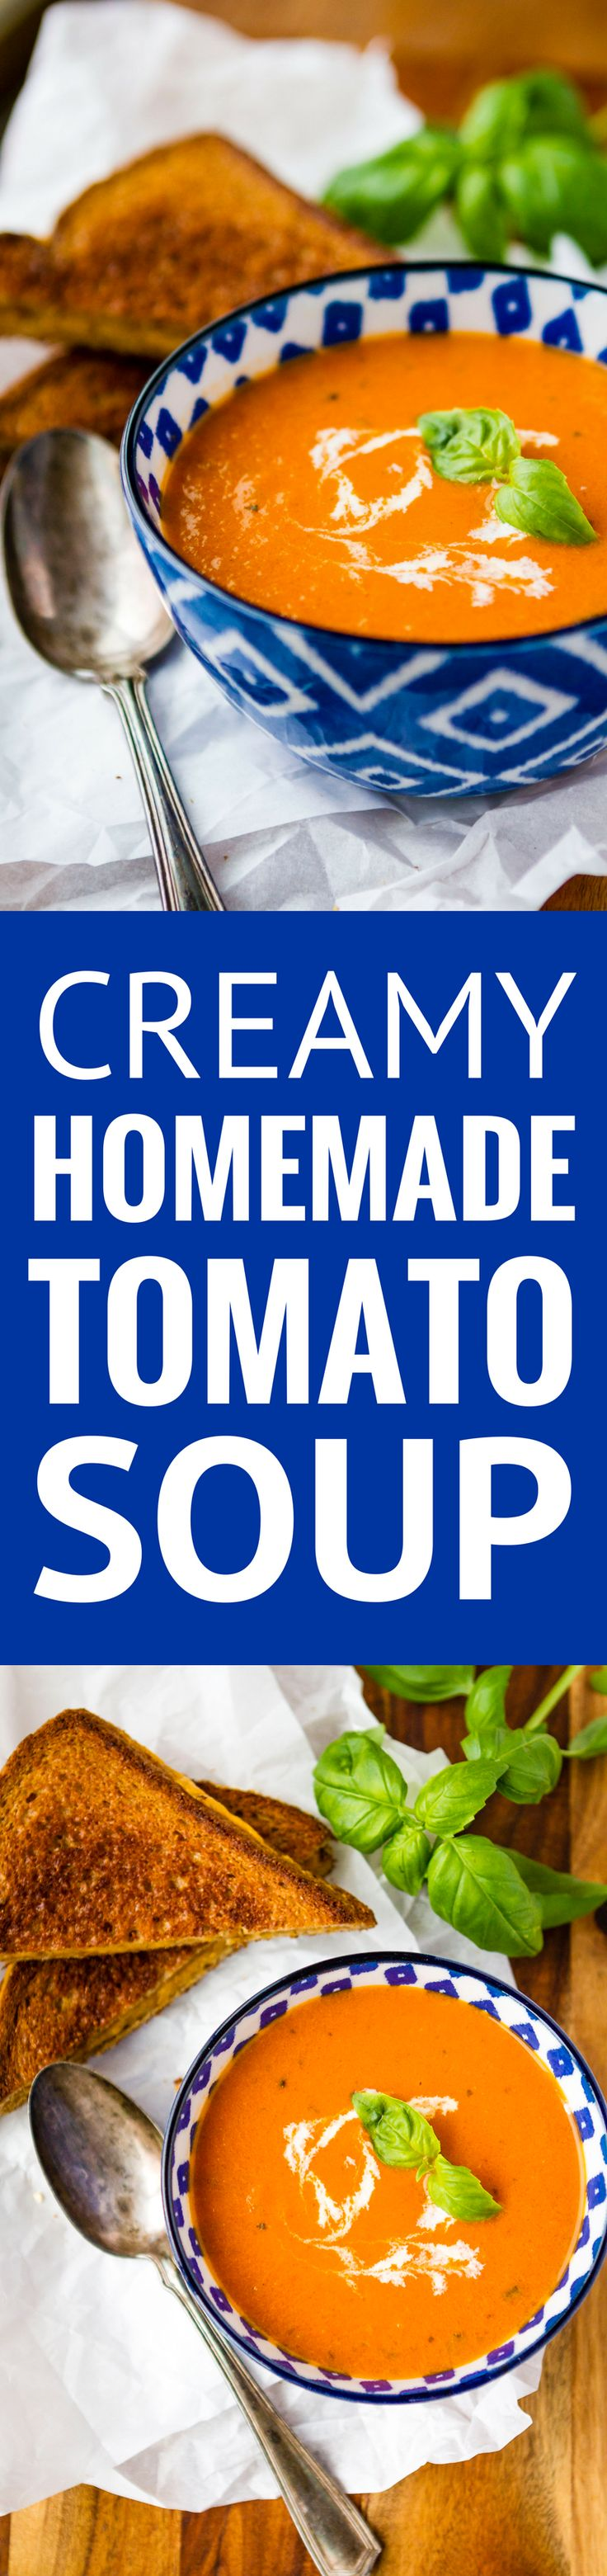 Homemade Tomato Soup -- this creamy tomato soup recipe is a total copycat of my favorite soup at First Watch! Perfect paired with a hot and fresh classic grilled cheese sandwich… | tomato soup easy | healthy tomato soup | tomato basil soup | find the recipe on unsophisticook.com